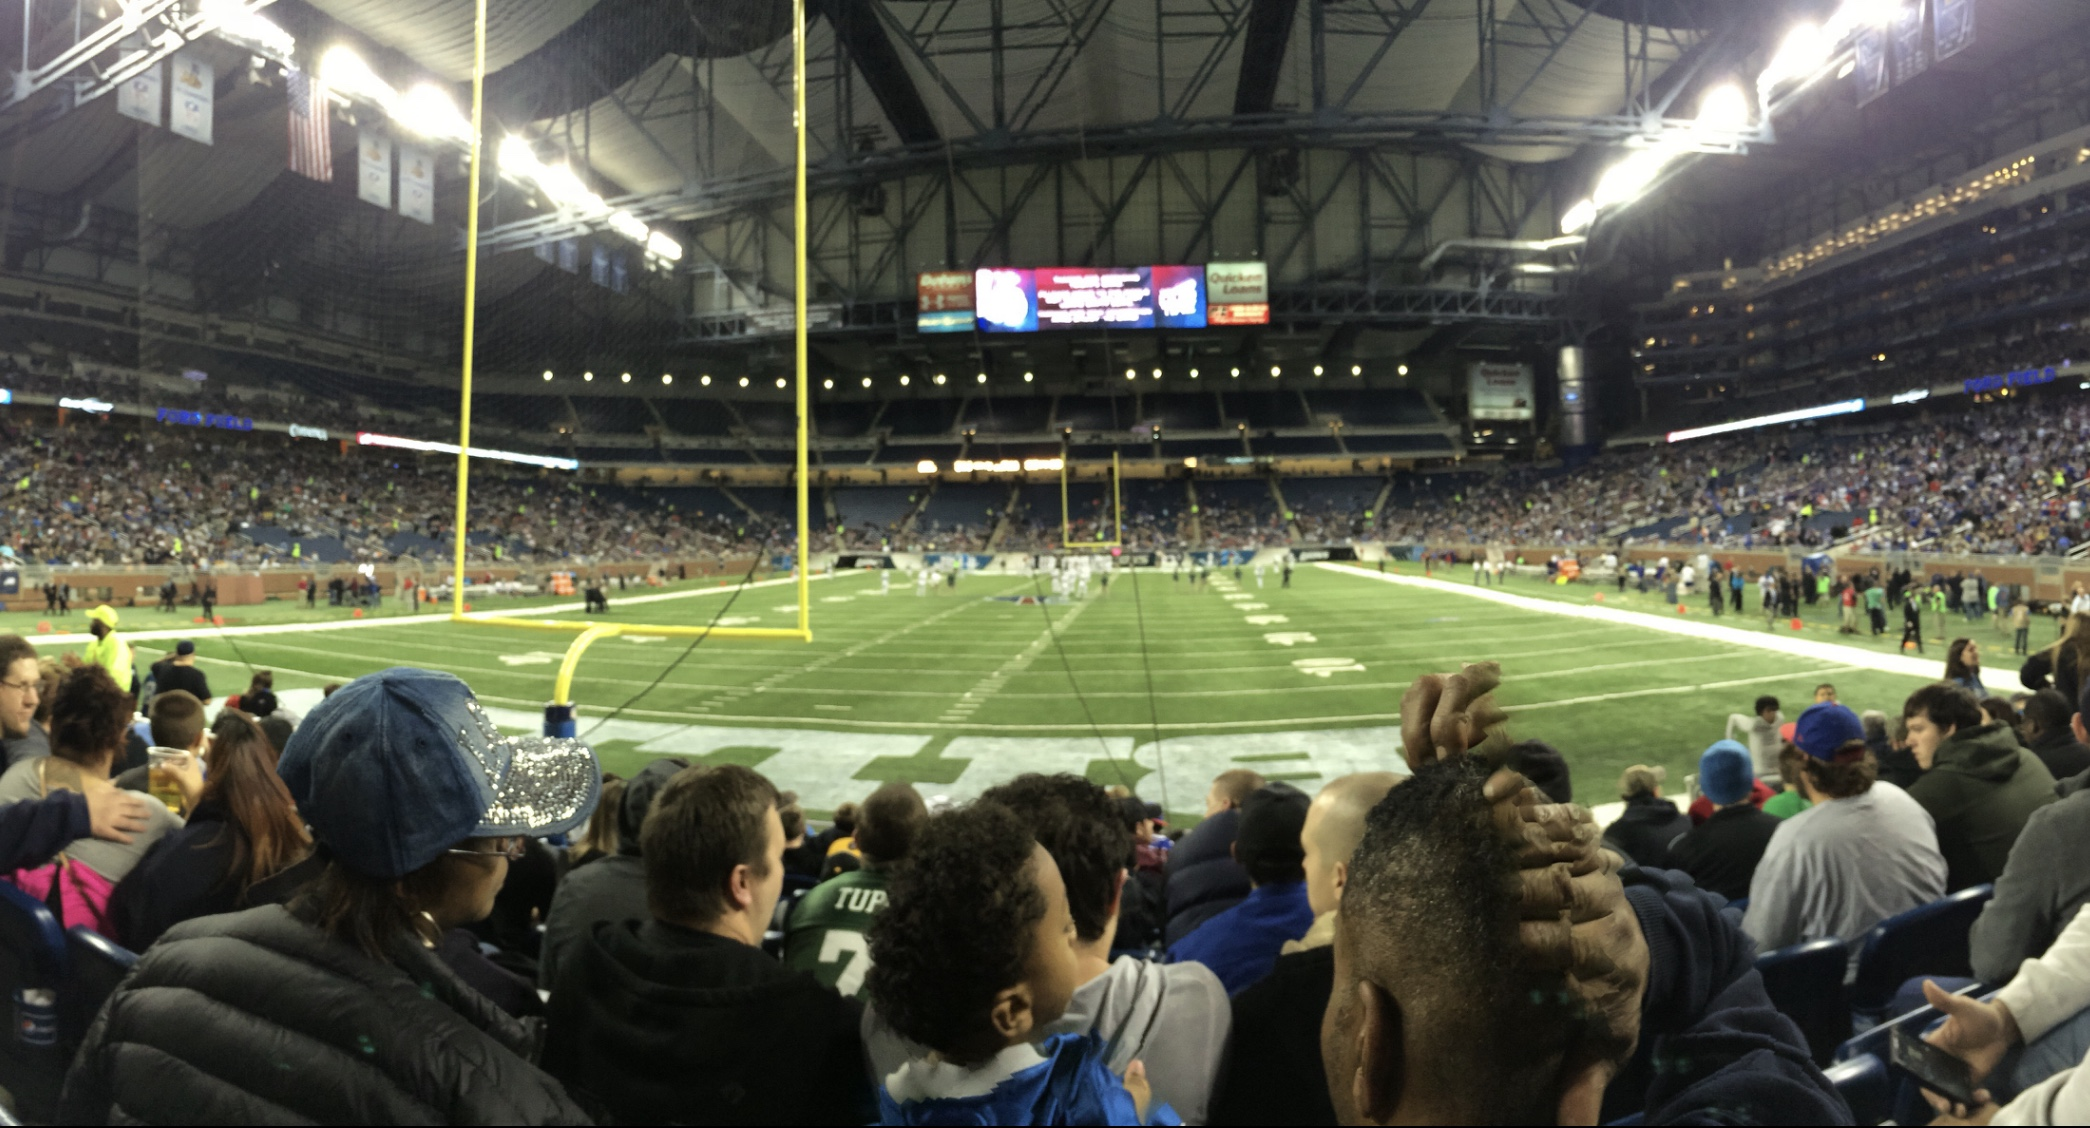 indoor football stadium view from end zone